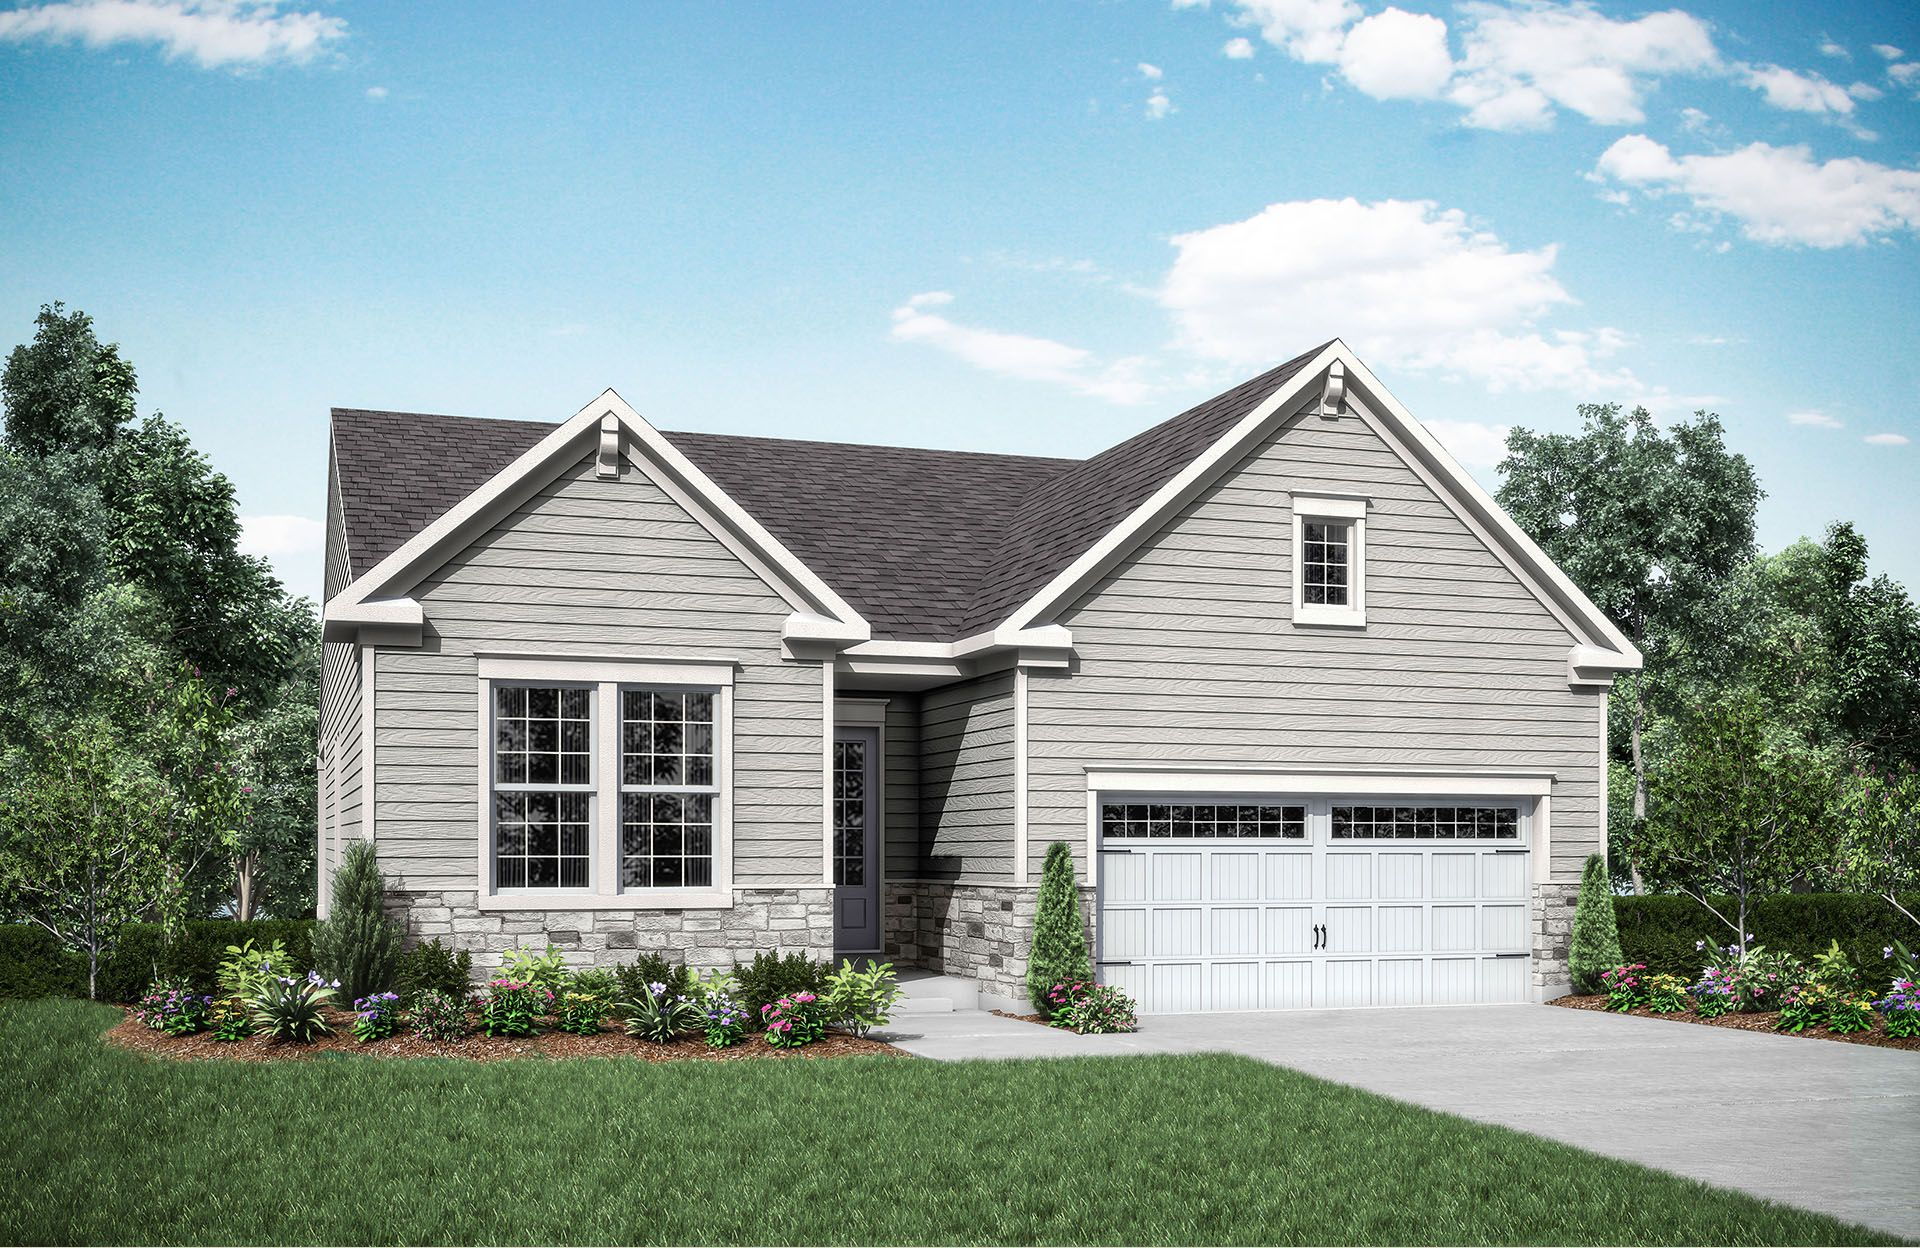 Single Family for Sale at Enclave At South Ridge - Casselberry 3416 Southway Ridge Erlanger, Kentucky 41018 United States